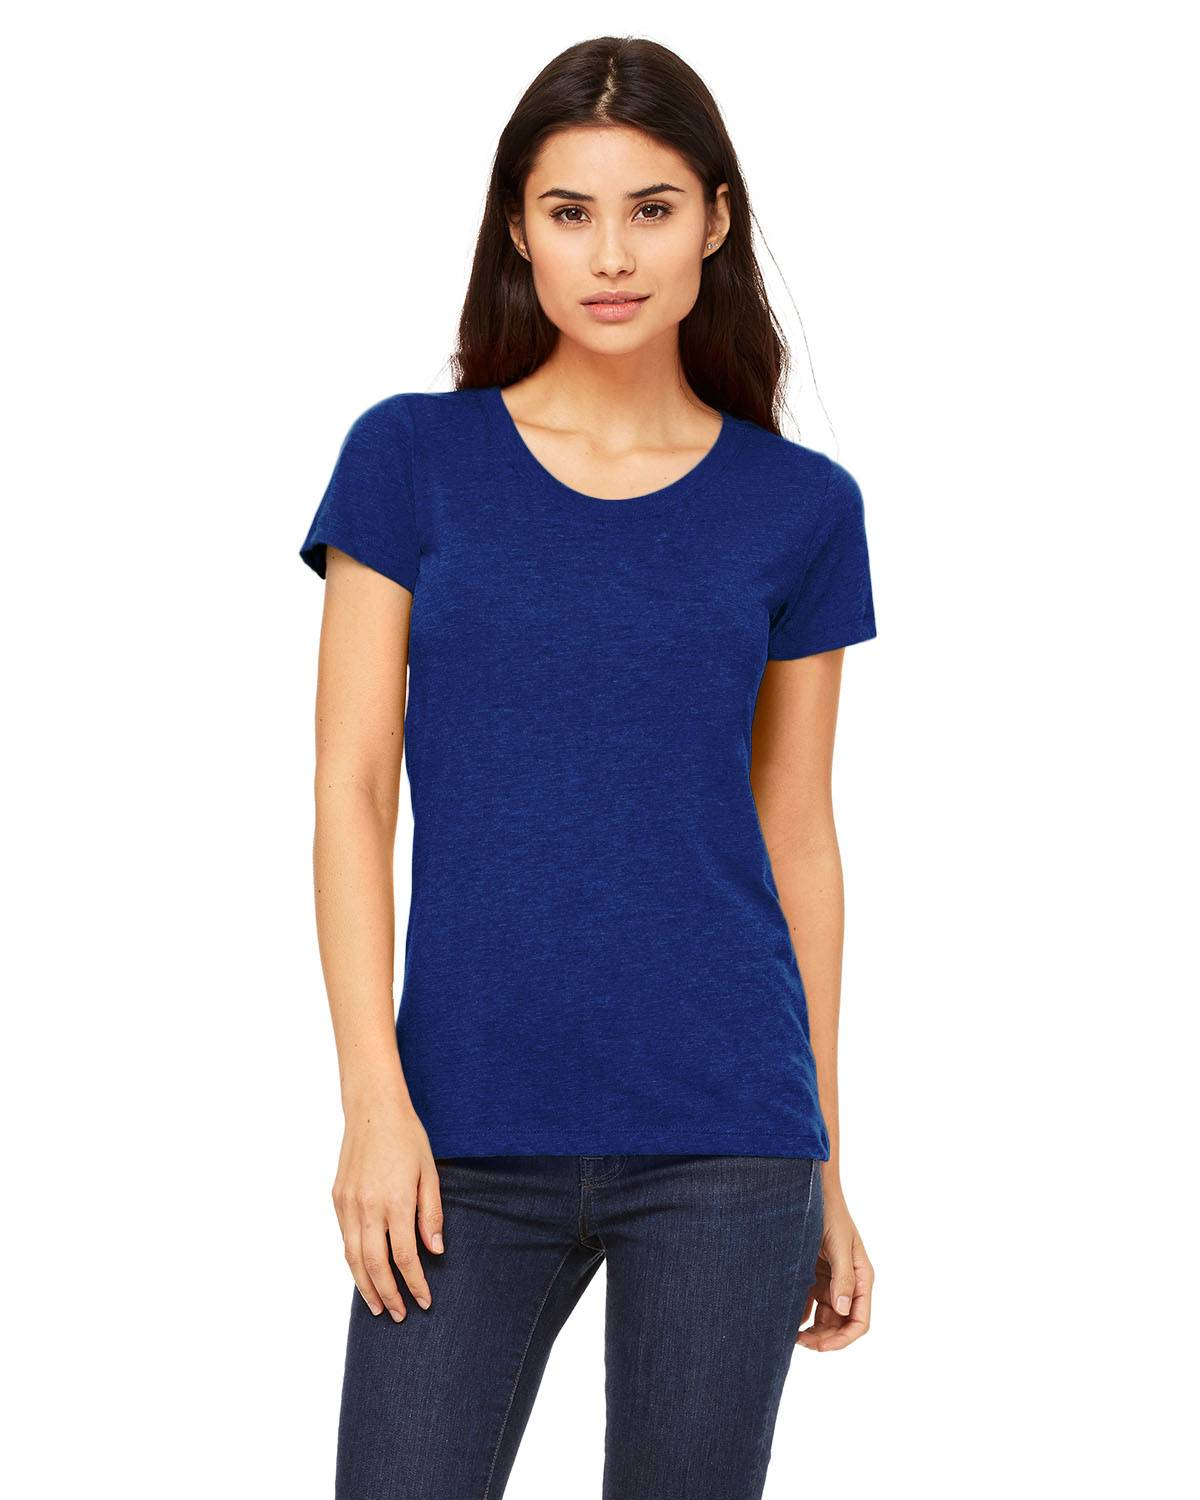 Bella + Canvas Ladies' Triblend Short-Sleeve T-Shirt | B8413